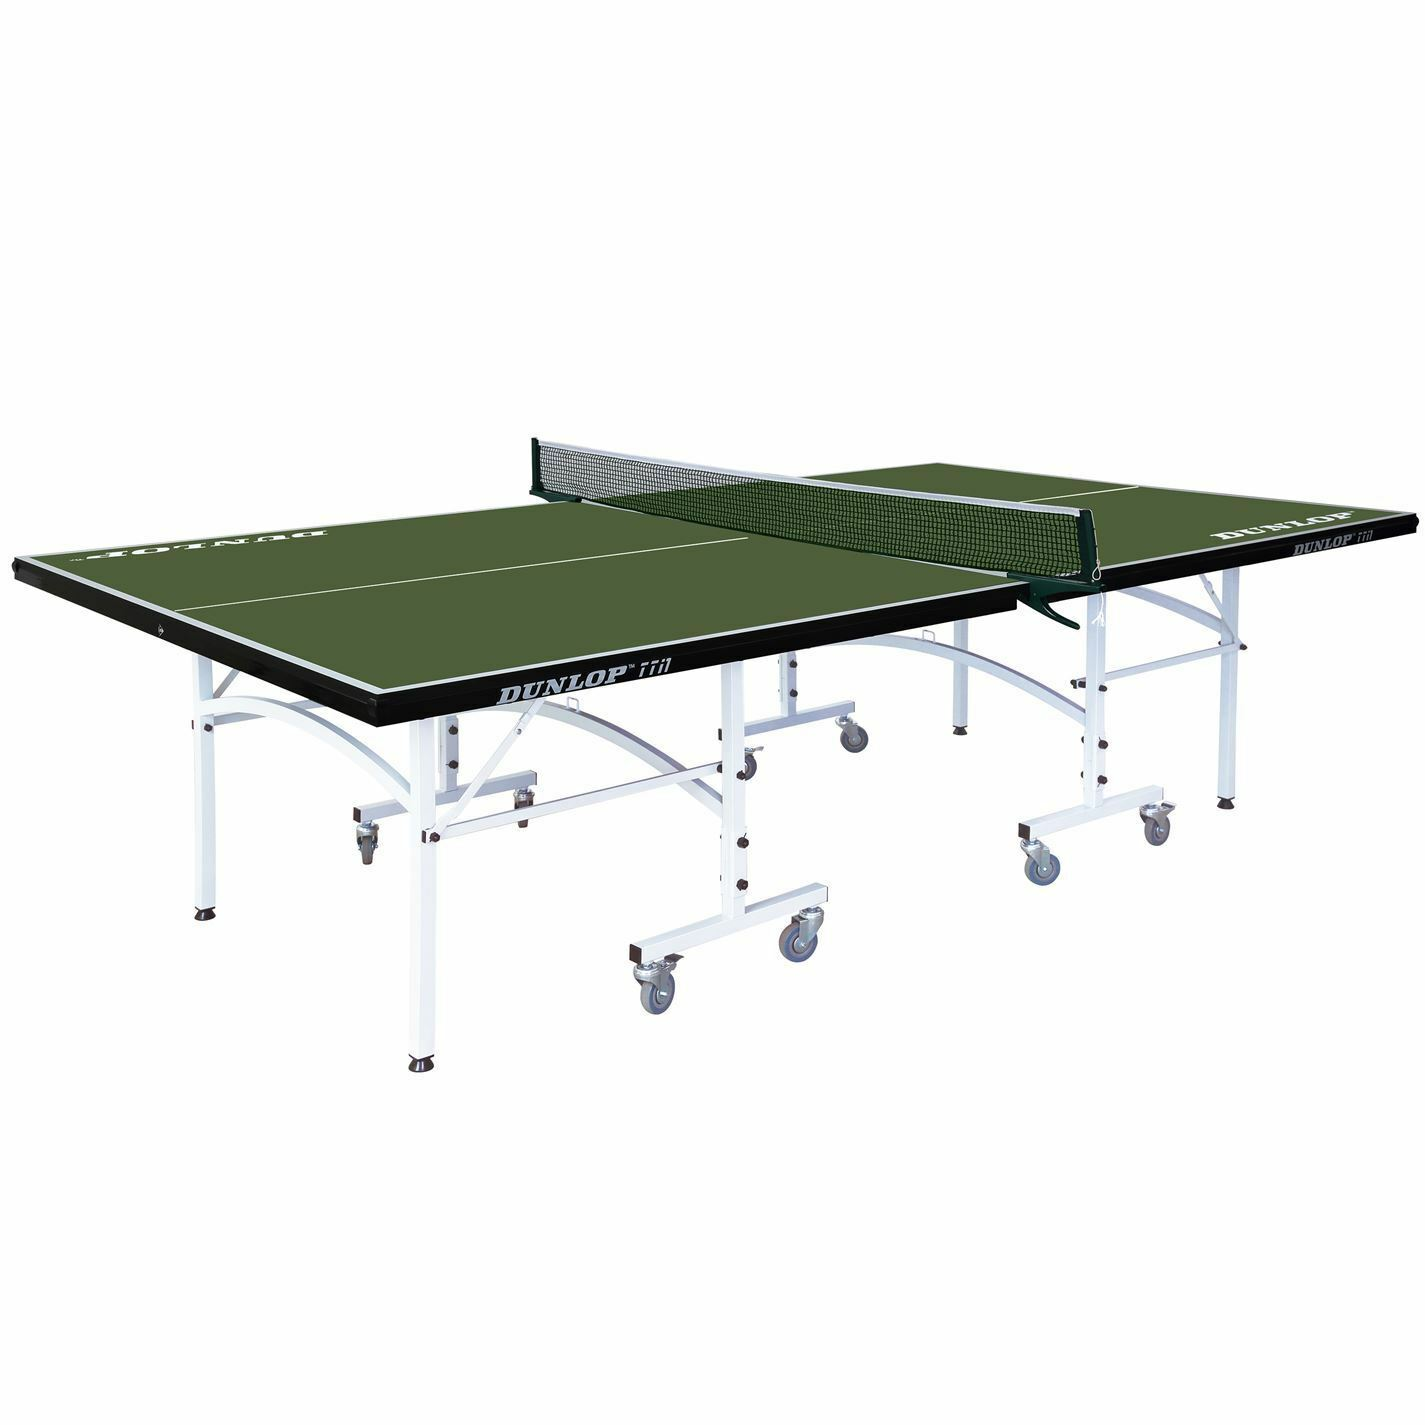 Dunlop TTi1 Indoor Table Tennis Tables Ping Pong Game Adjustable Full Size